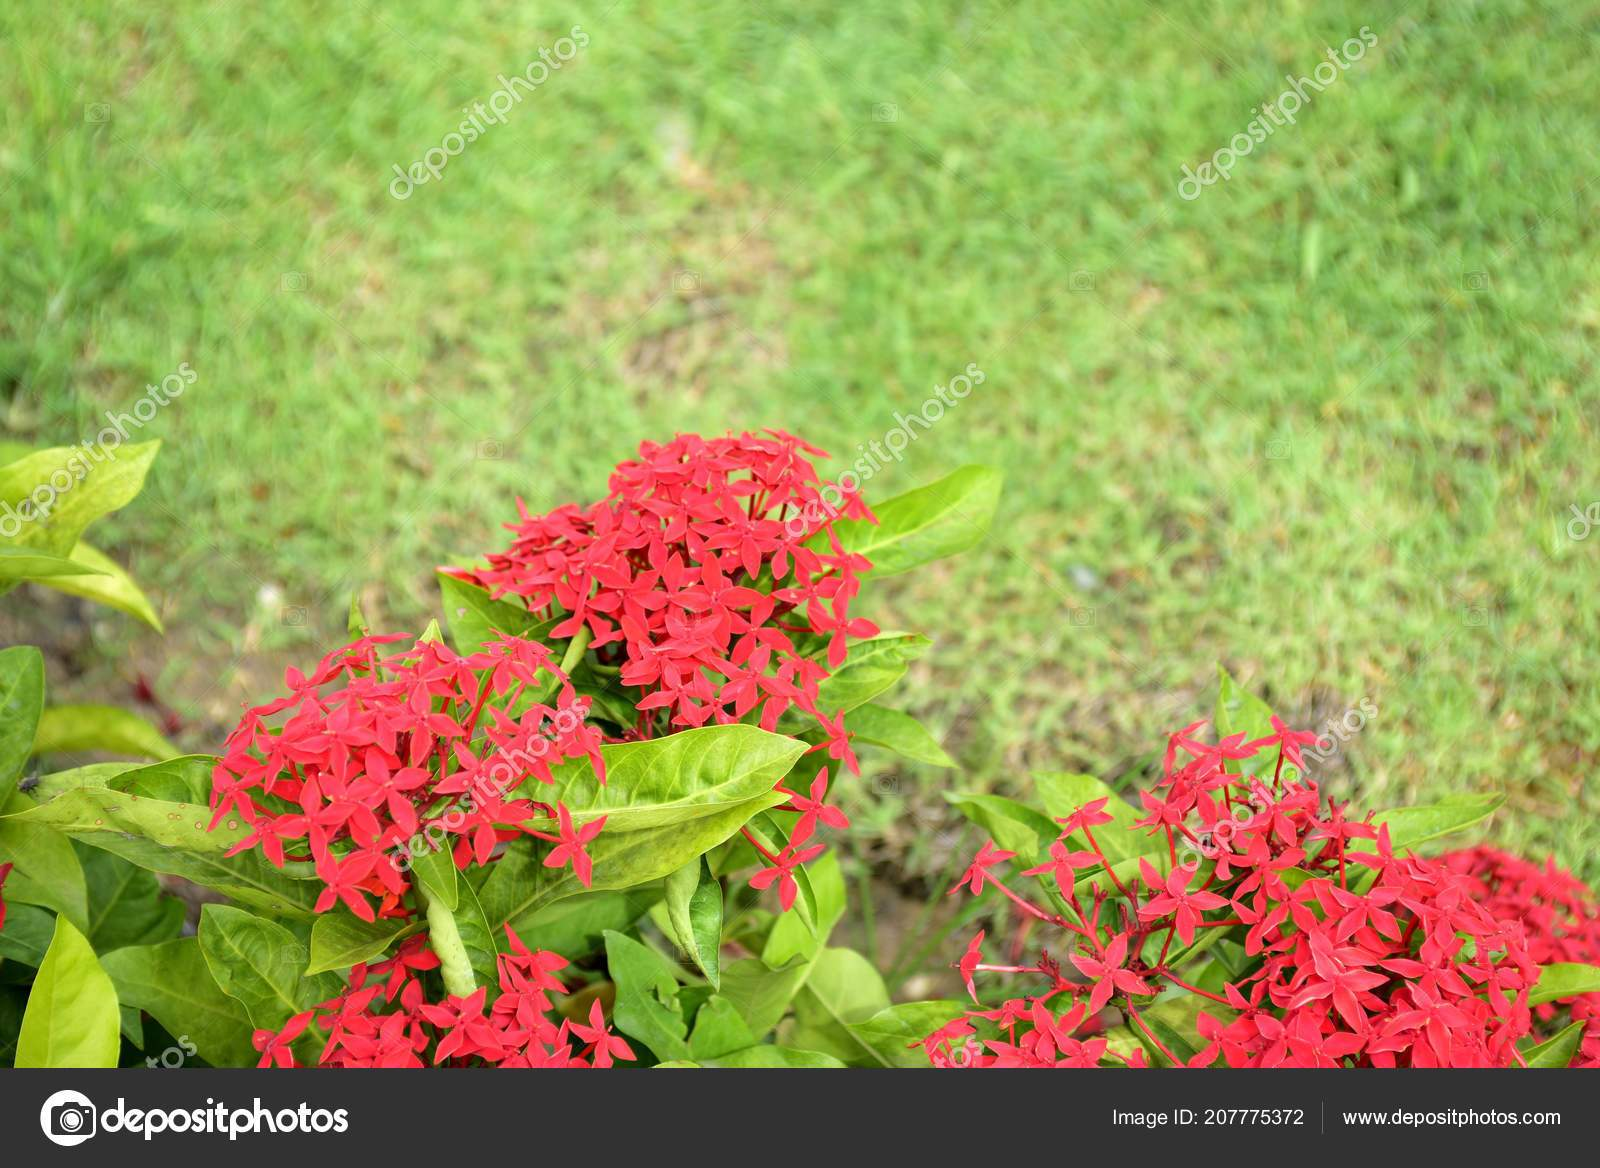 depositphotos stock photo colorful flowers garden flower blooming